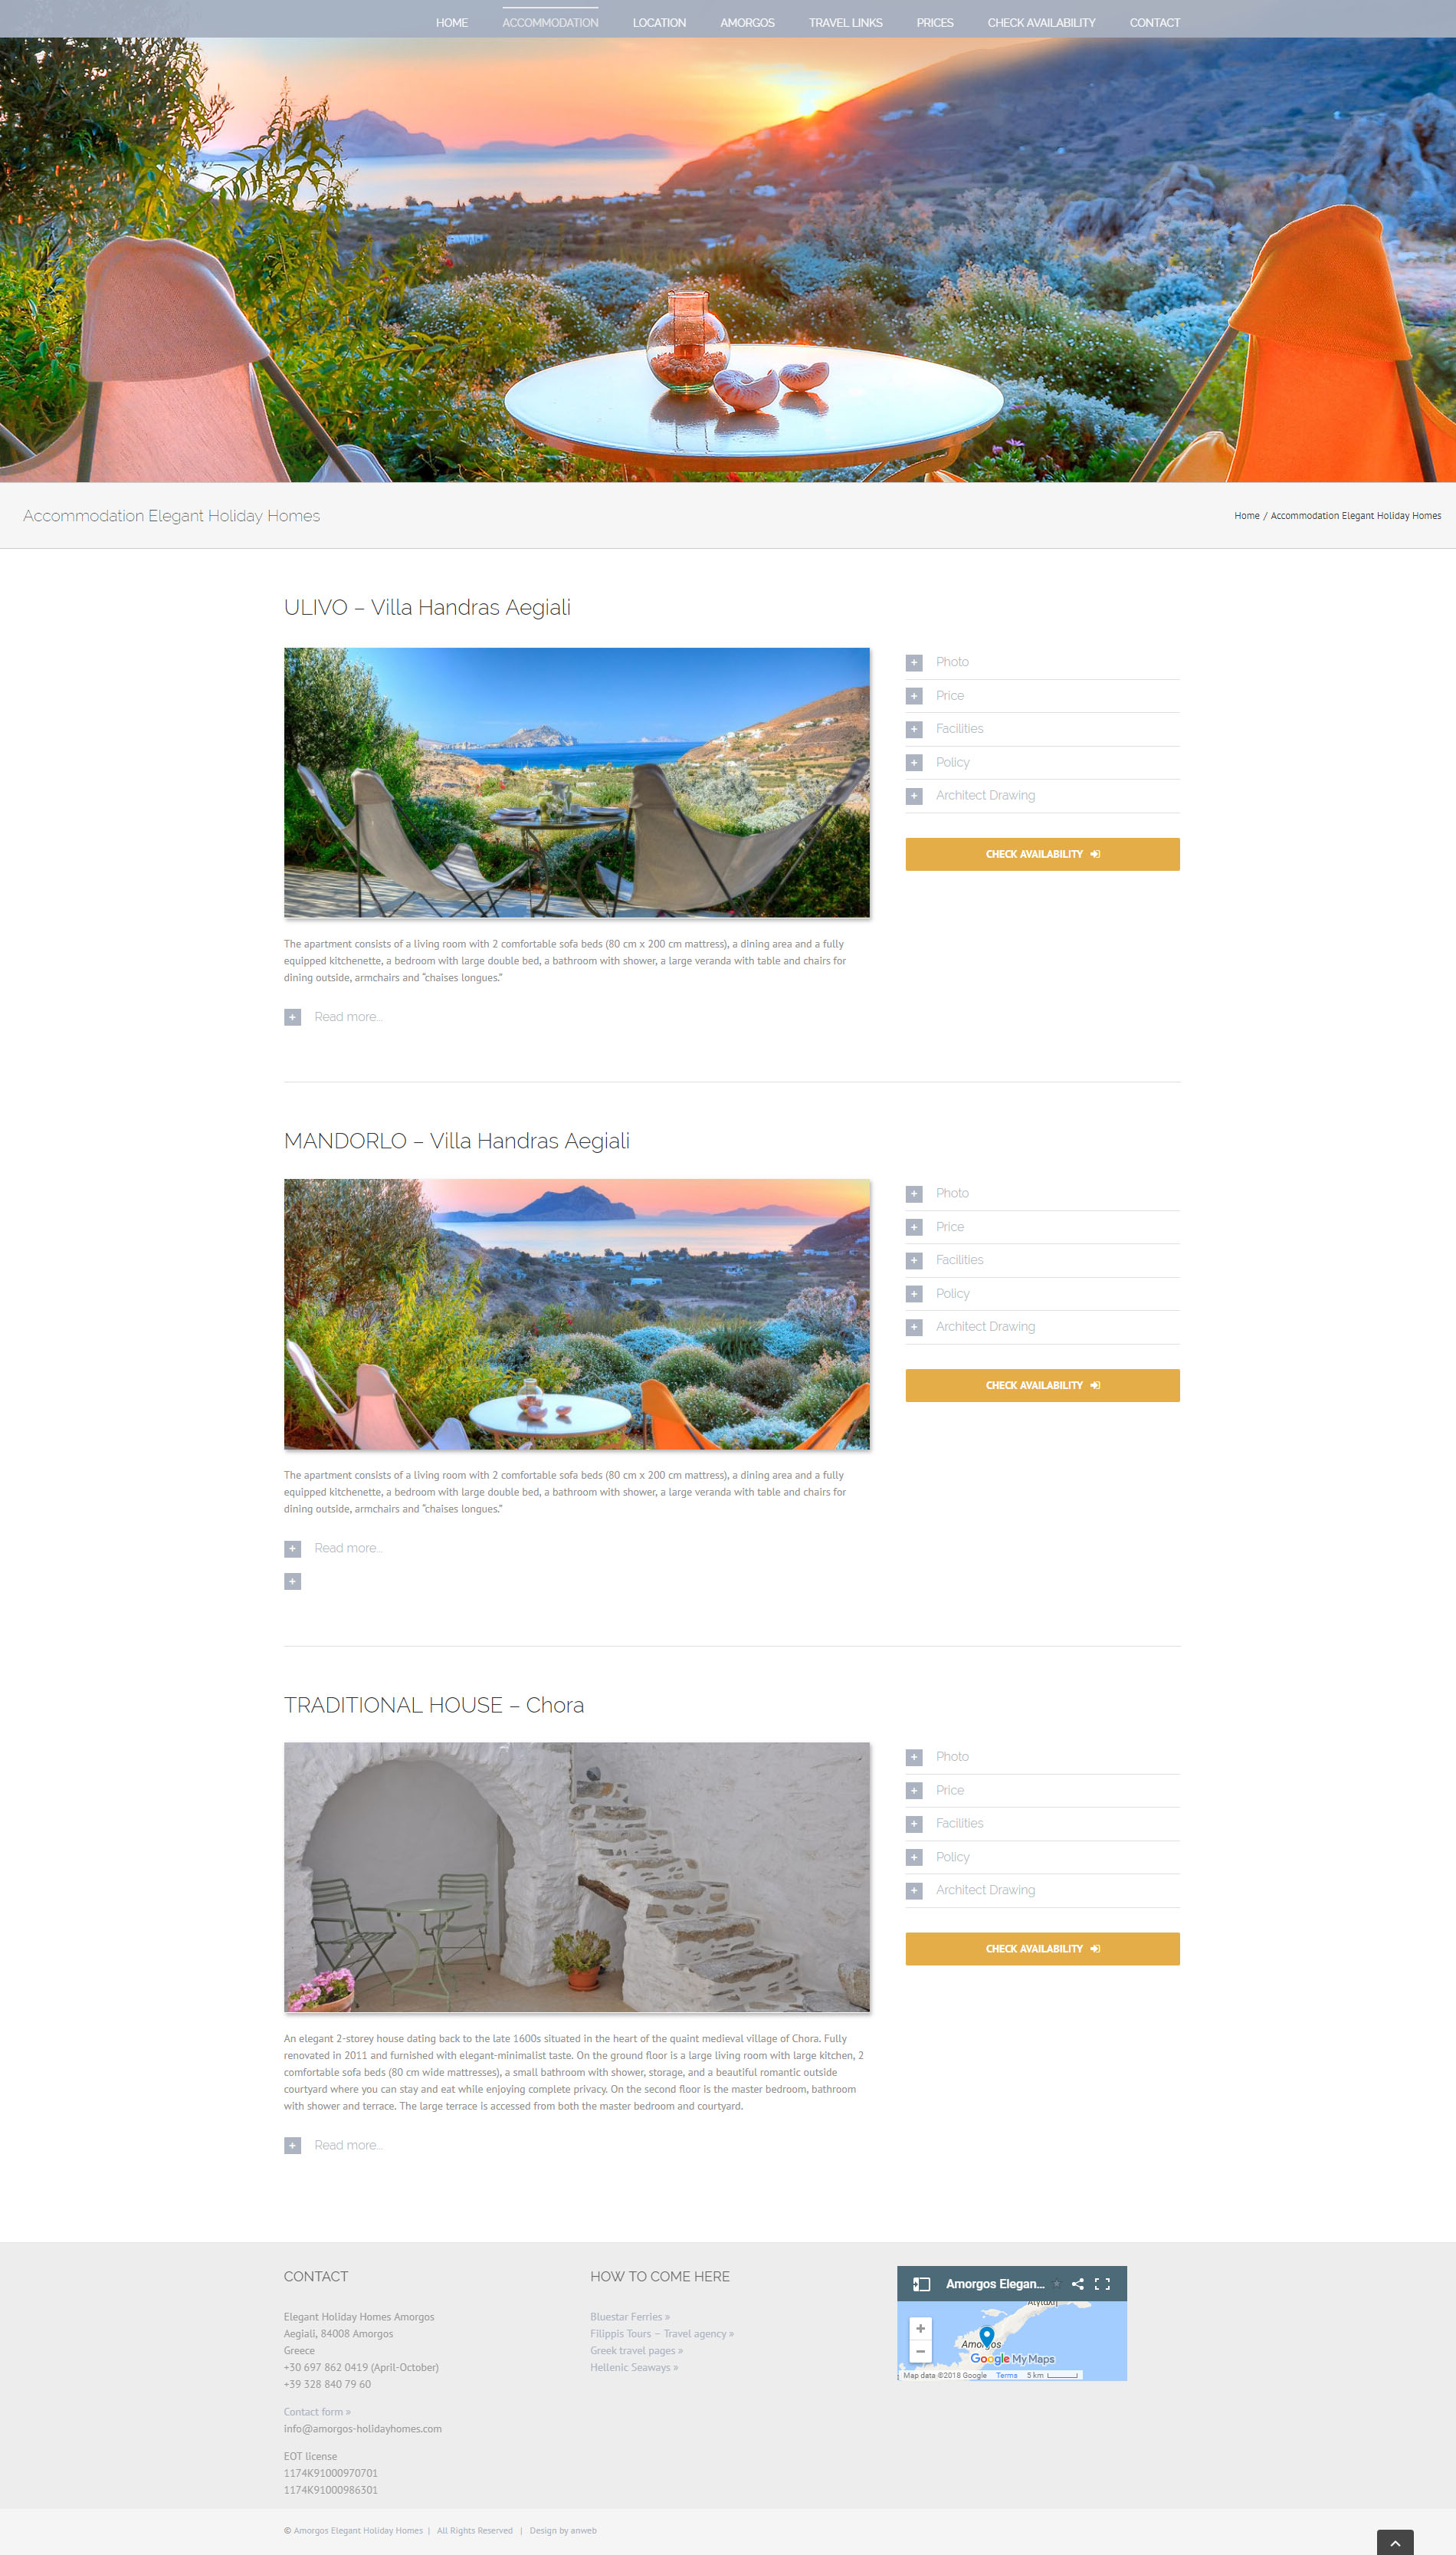 Website Elegant Holiday Homes